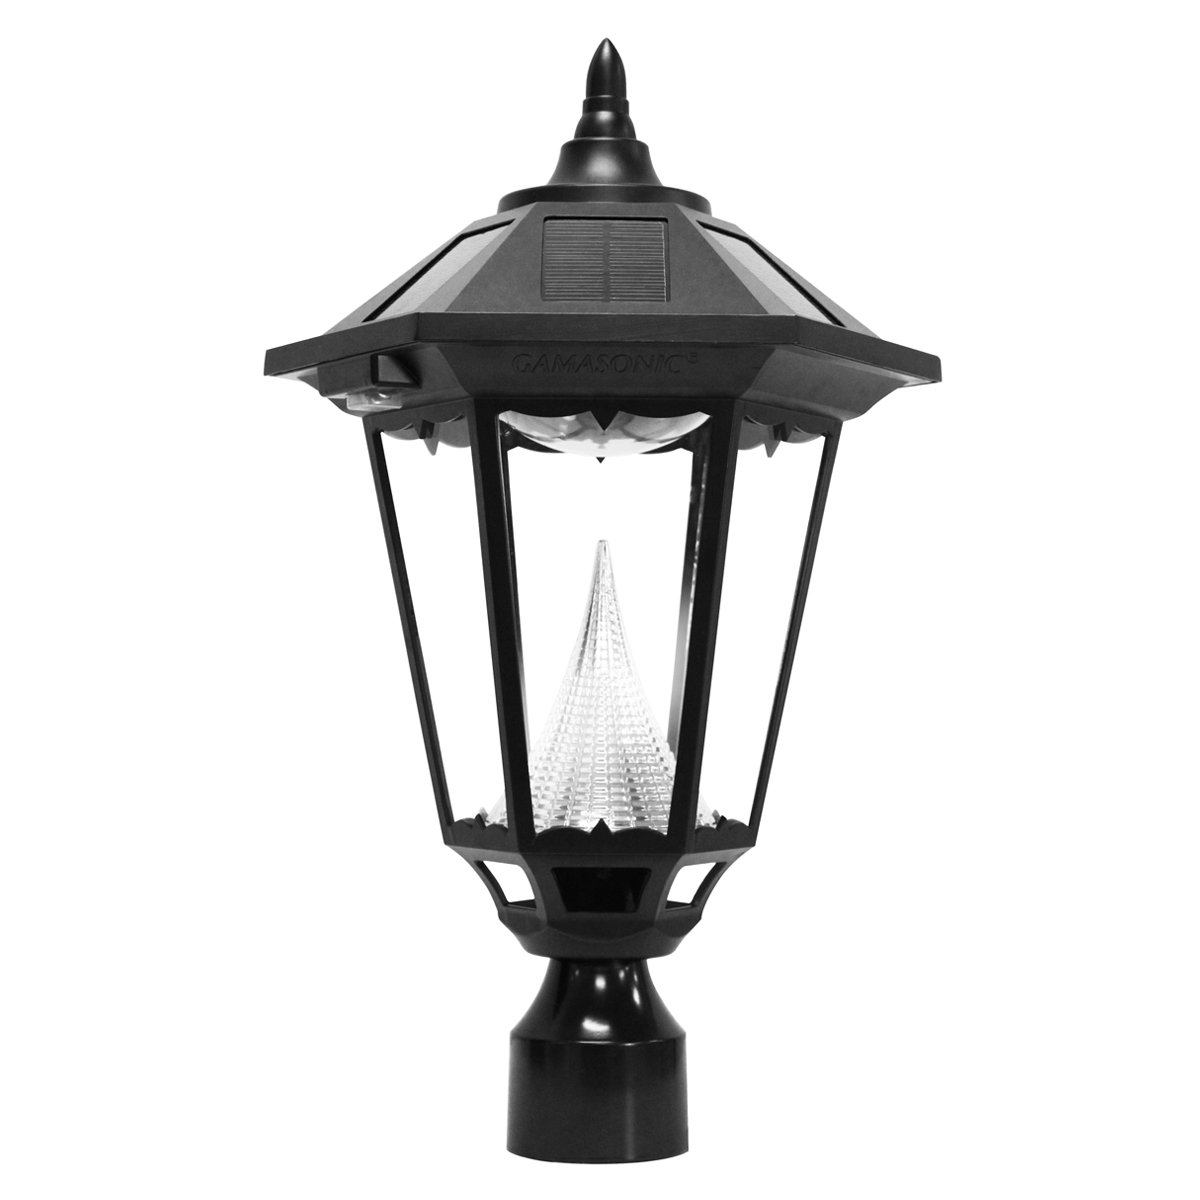 Gama Sonic Windsor Solar Outdoor Post Light - Black Finish GS-99F